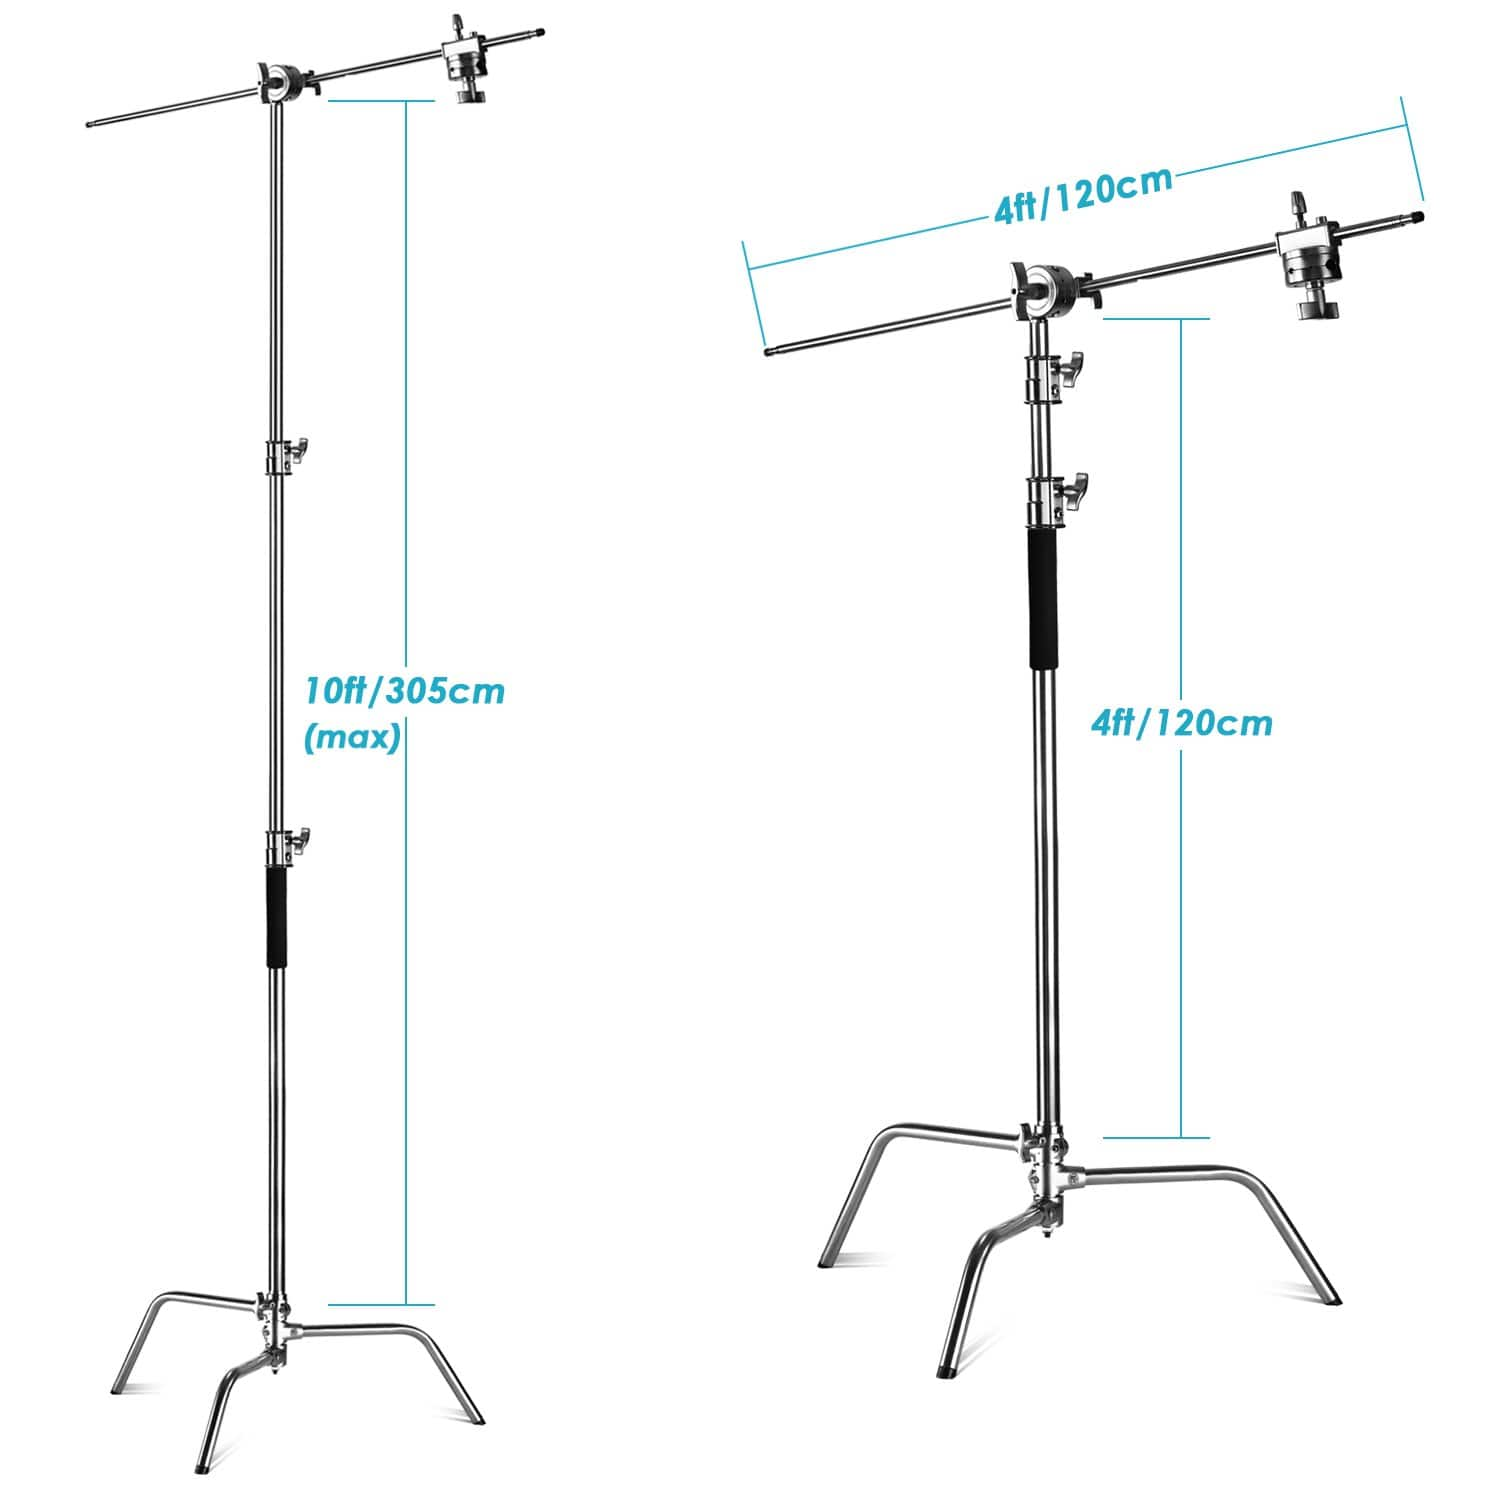 Neewer Pro 10ft/305cm Adjustable Metal C-Stand with 4ft/120cm Holding Arm - $76.99 + Free Shipping